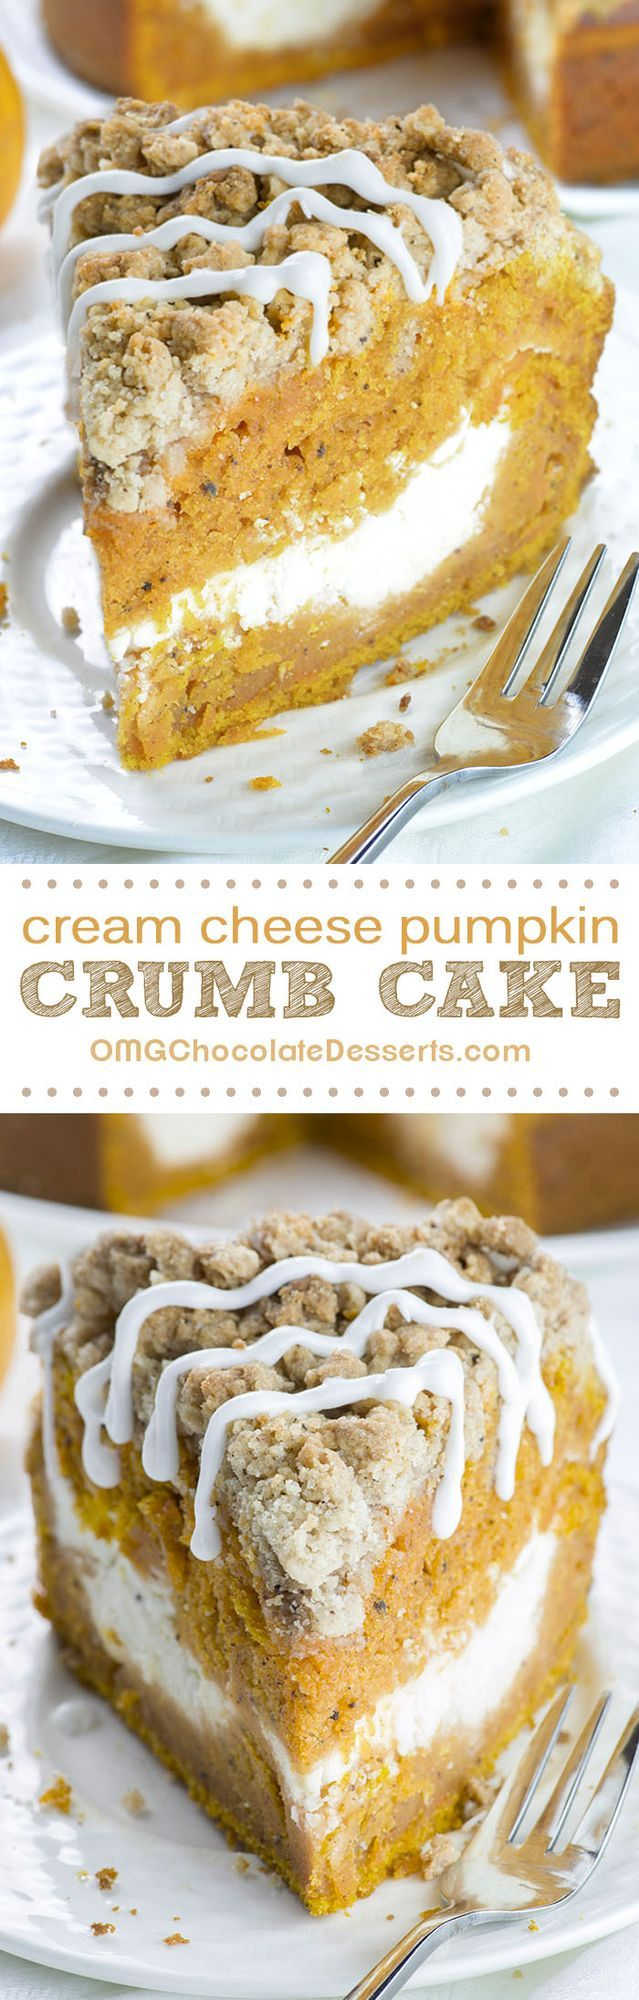 This is the fall recipe you've all been waiting for- Pumpkin Coffee Cake! A big slice of spiced pumpkin cake with cream cheese filling in the center and crunchy brown sugar-cinnamon crumbs on top driz